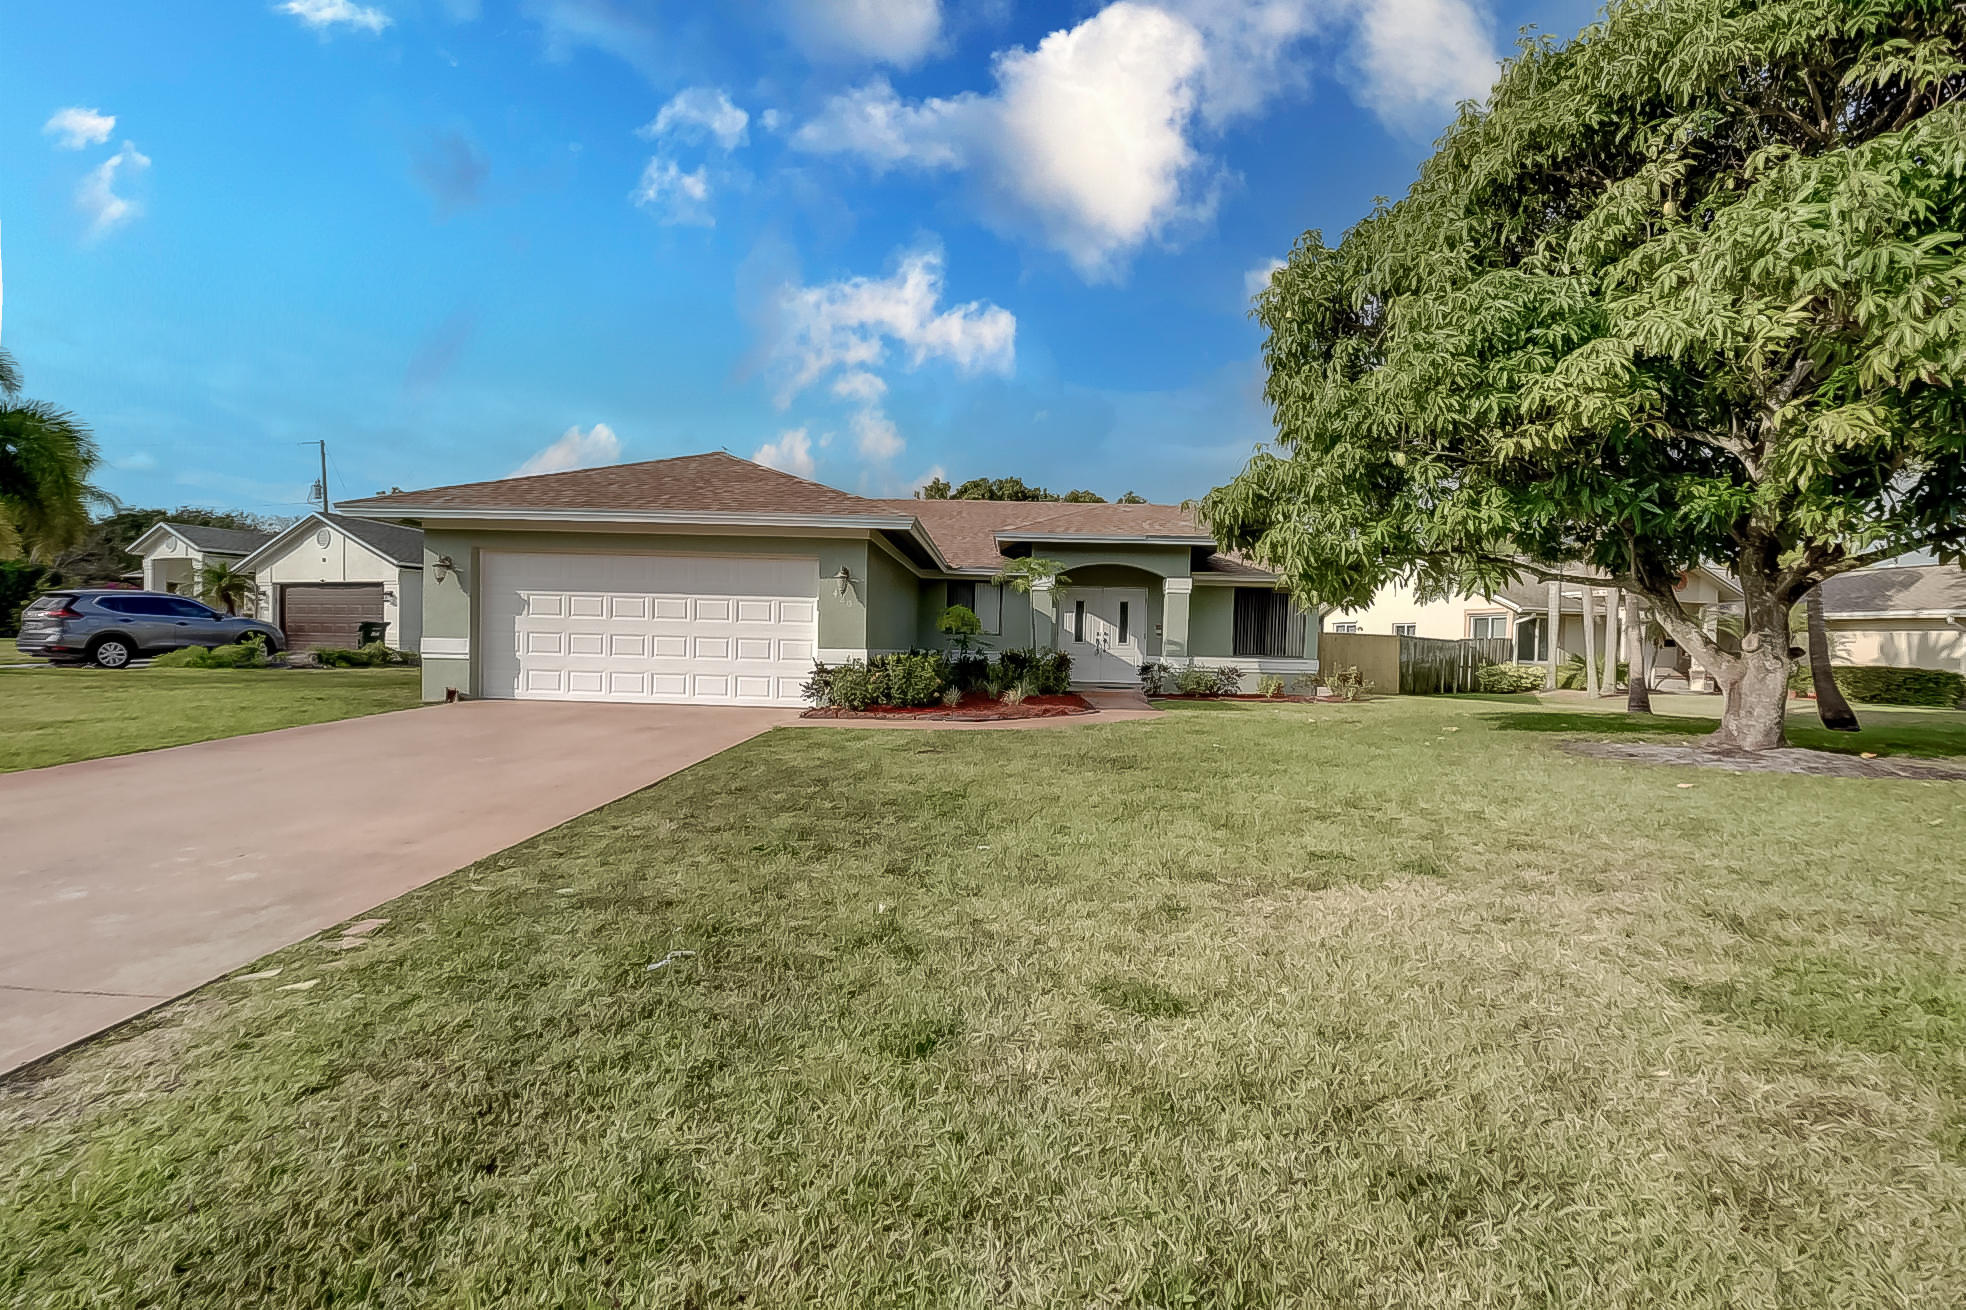 Do not miss this updated house in Lake Ida.Large backyard for kids to play, room for a large pool, within minutes from Lake Ida Park , short distance to the Ocean. less than 1 mile walk to downtown Delray. No HOA, Roof is 2 years old, new kitchen in 2020,new toilets,$4500 double front entrance door. in 2019,new A/C in 2019.